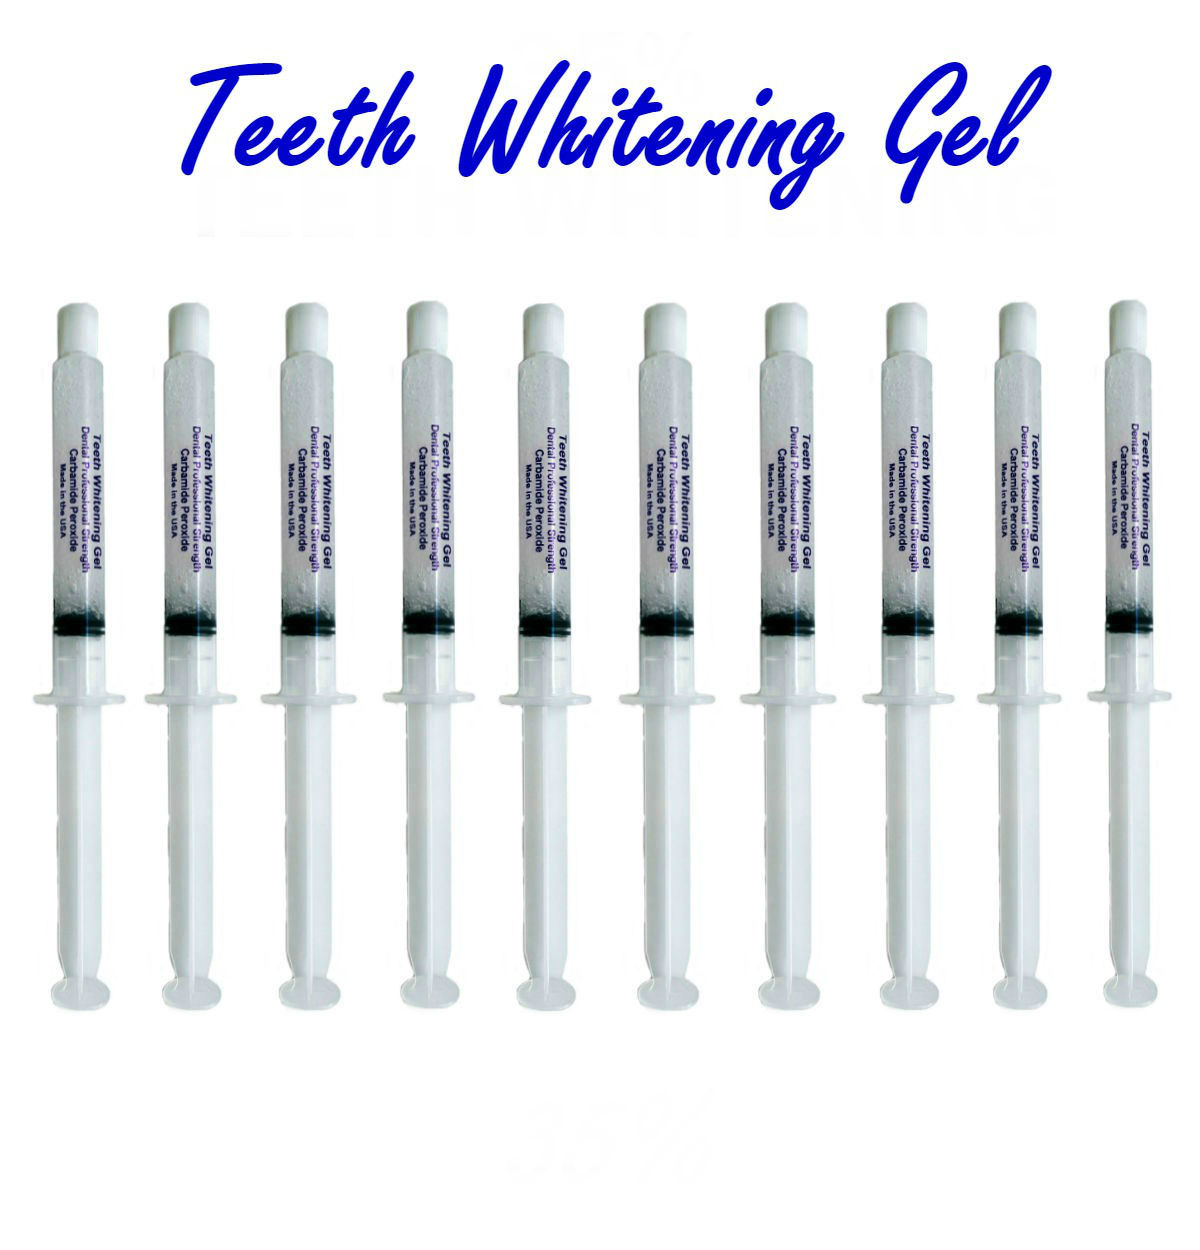 Primary image for 10 Syringes 35% Advanced Teeth Whitening Gel (100 ML) - Professional At Home Kit